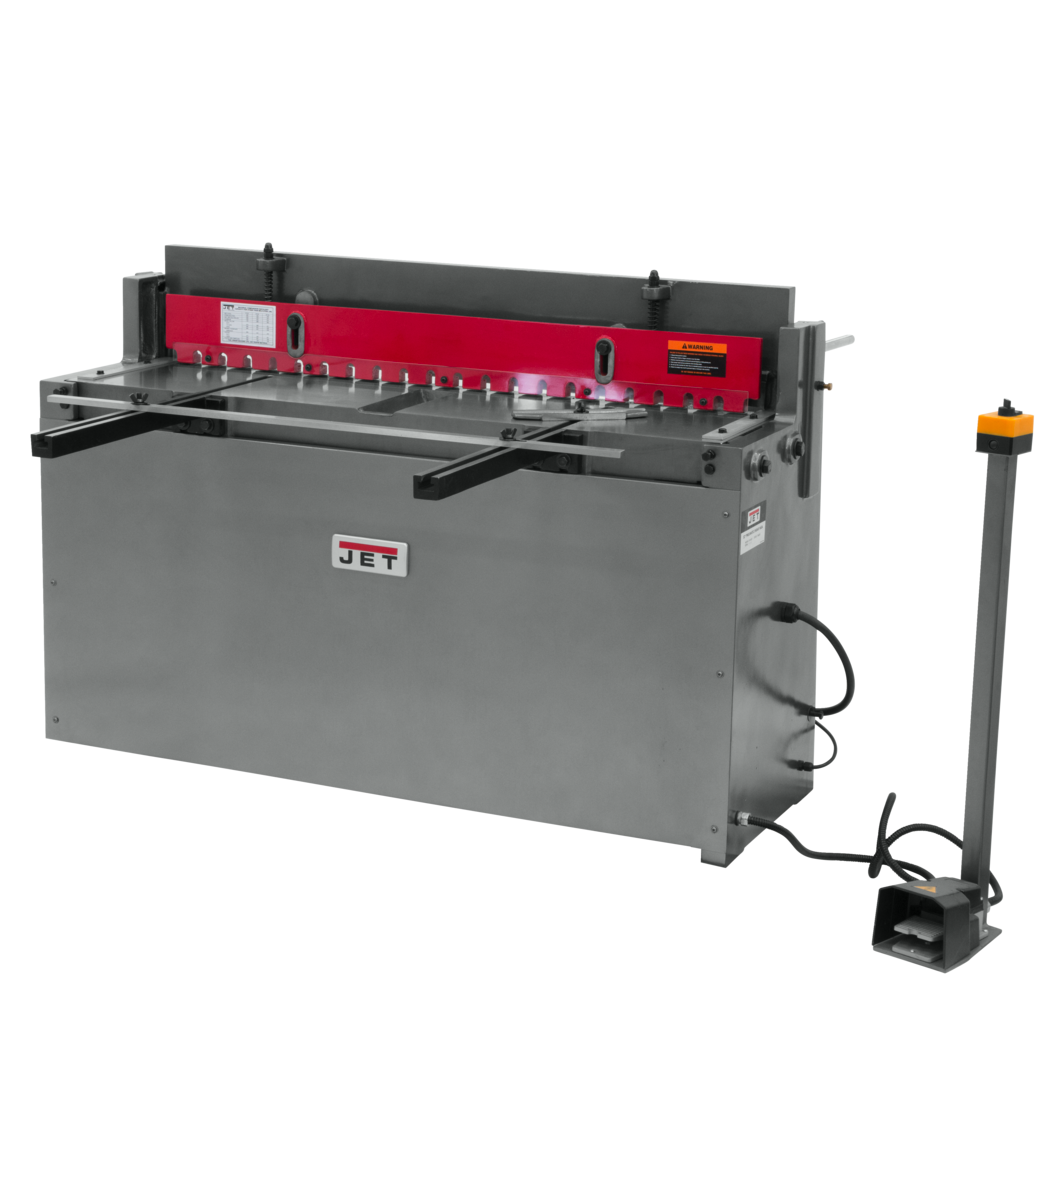 "PS-1652T, 52"" x 16 Gauge Pneumatic Shear"